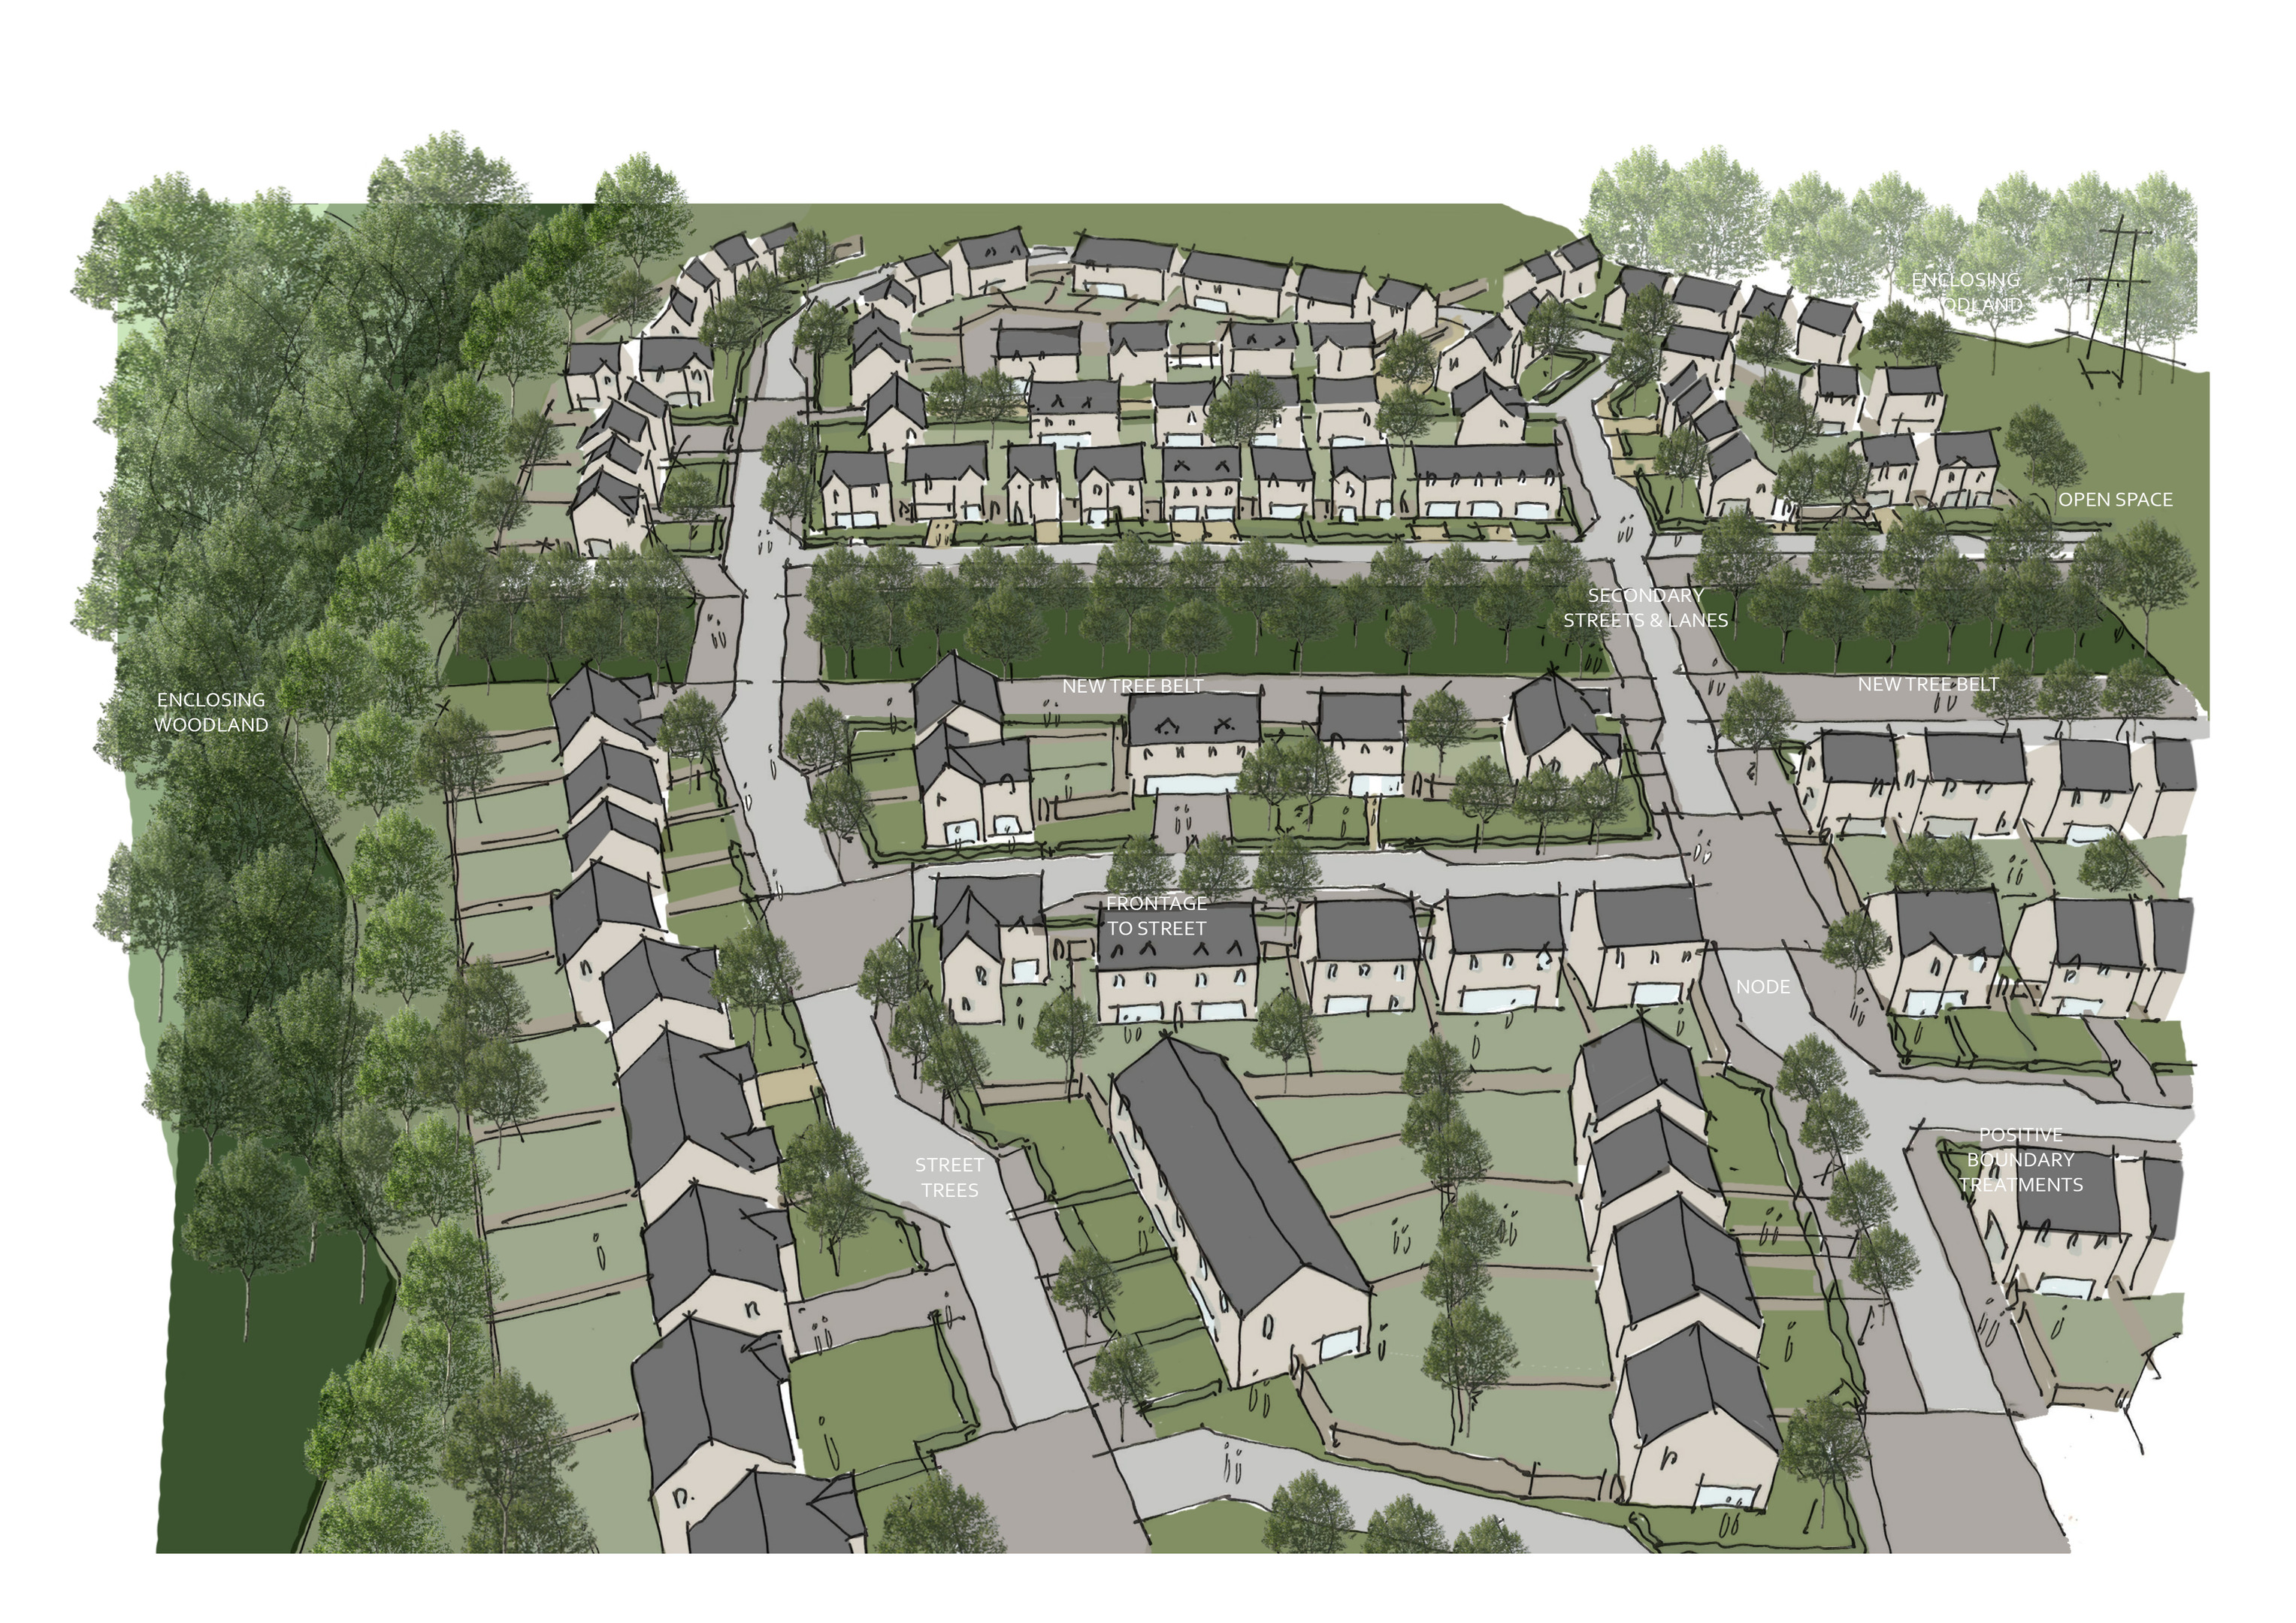 An overview of the Almond Valley project, as rejected by Perth & Kinross Council